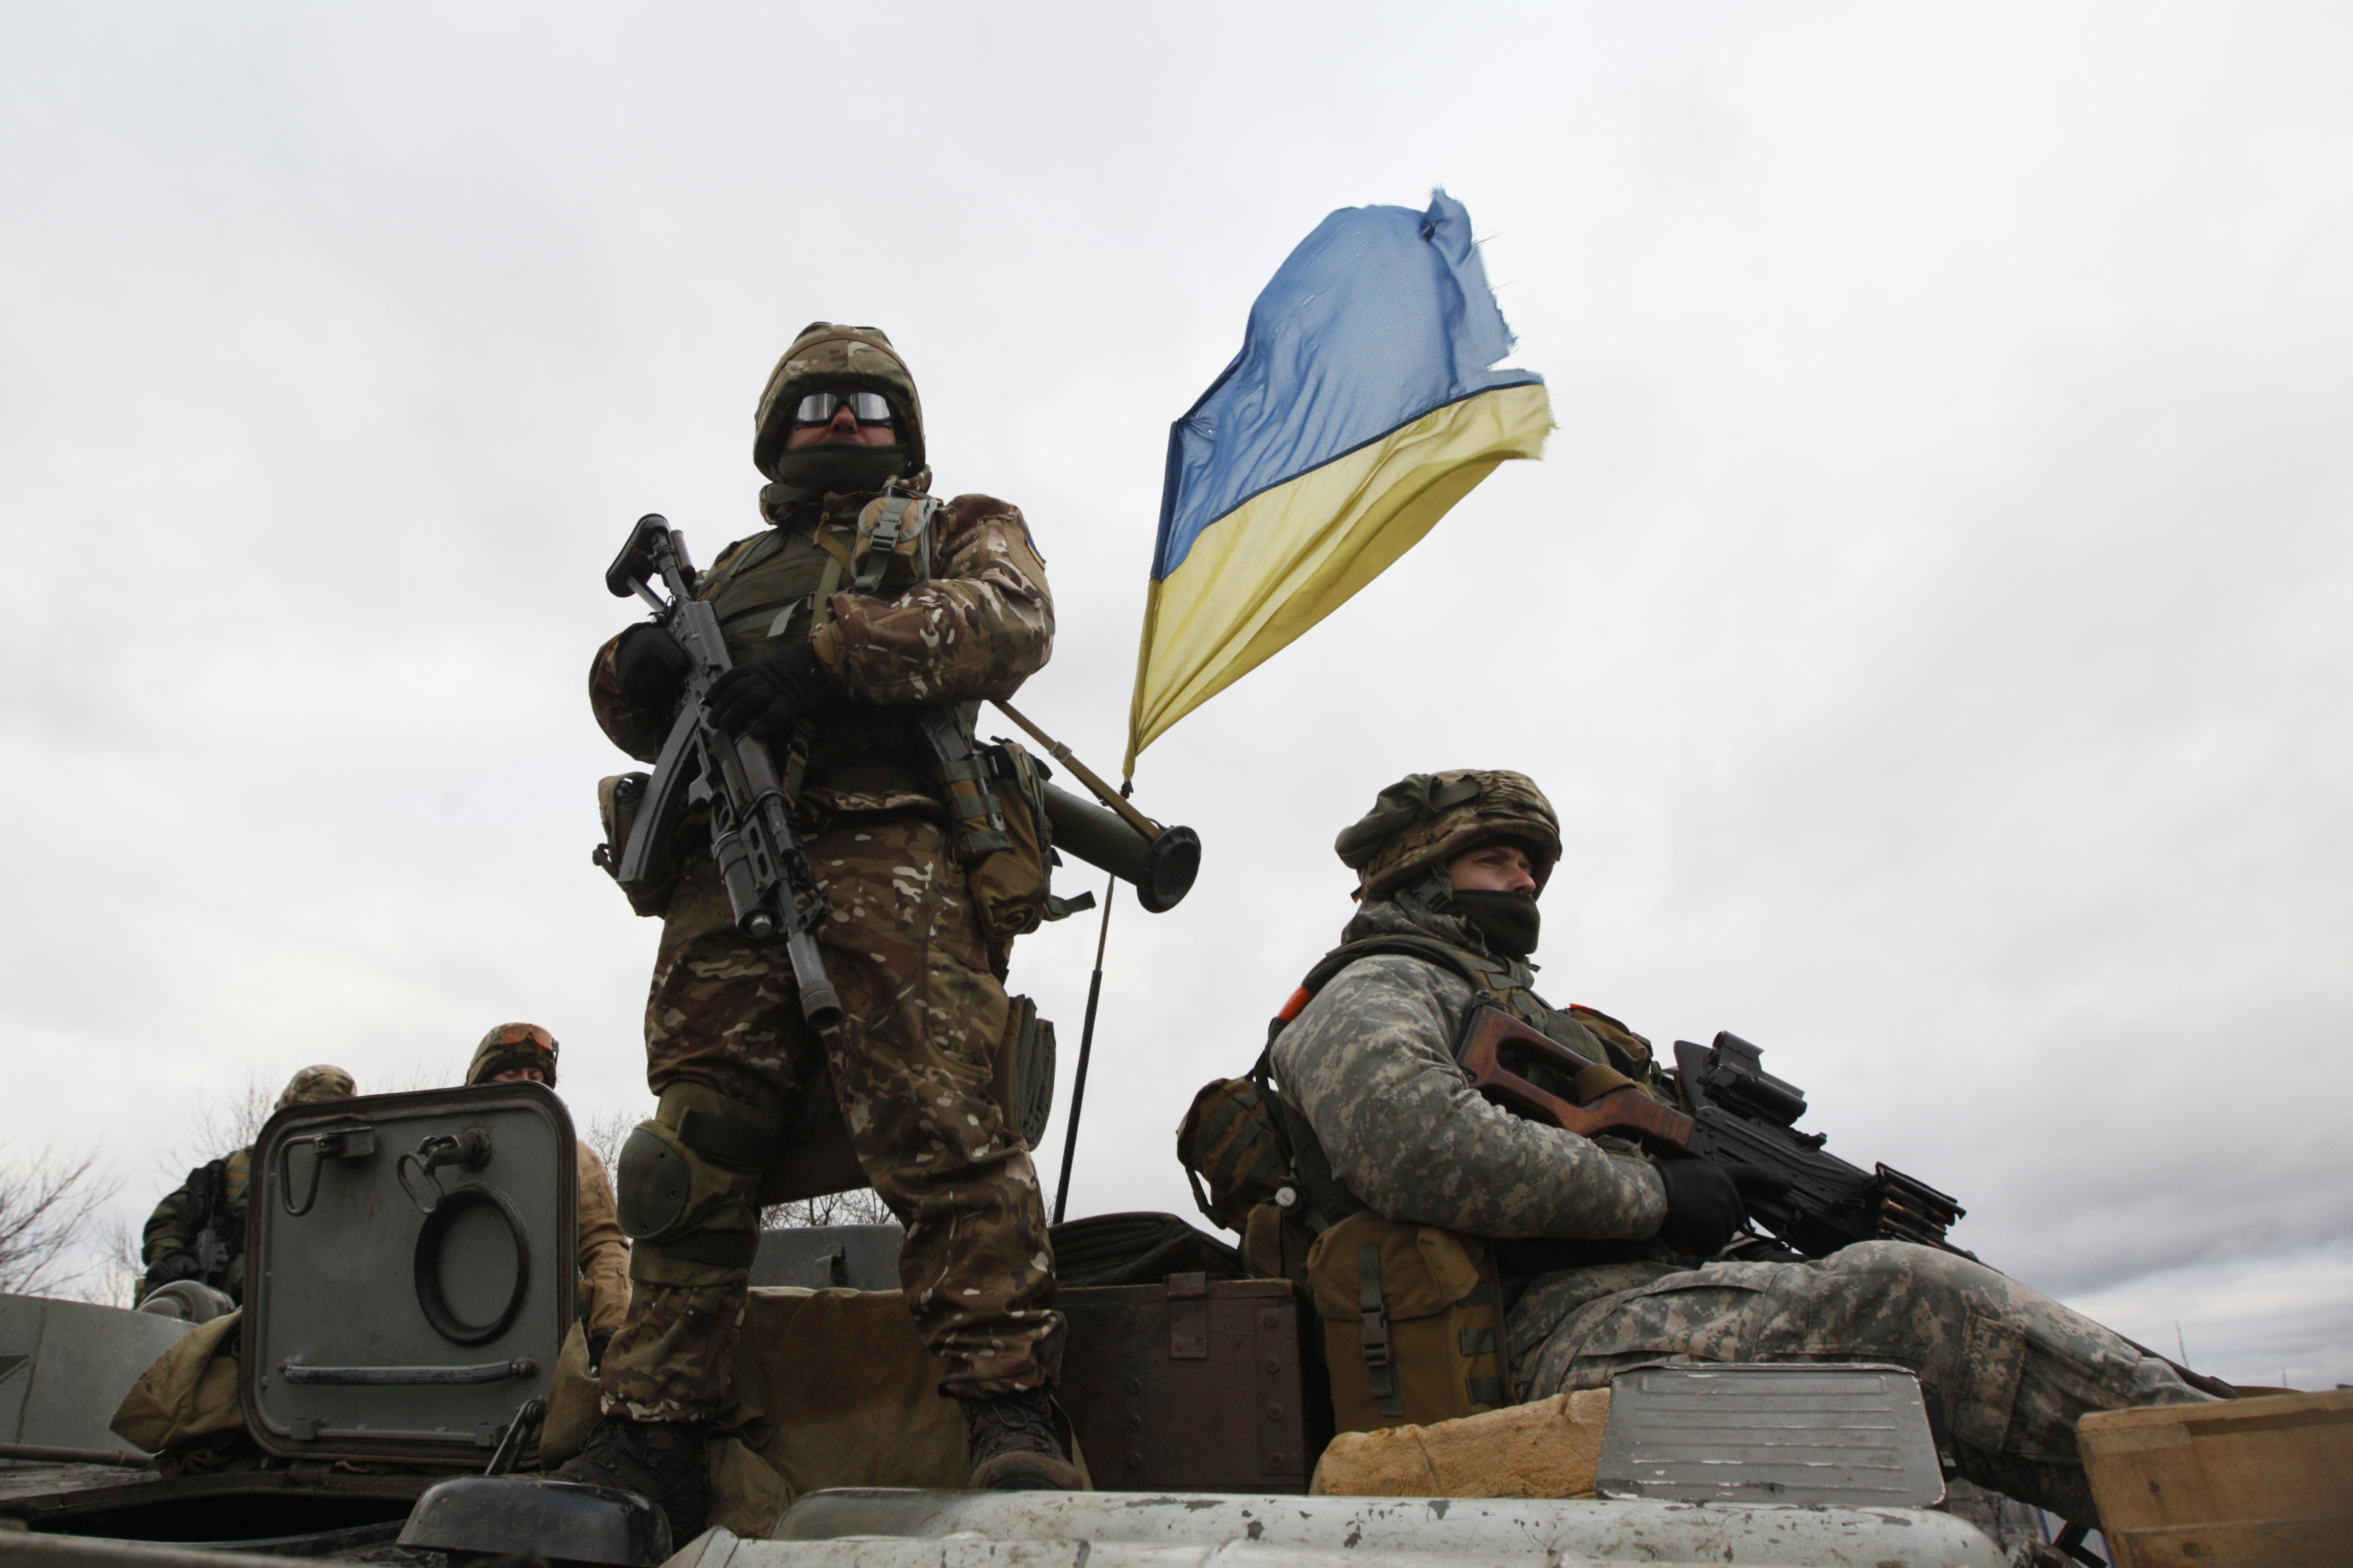 Russian Military Forces Weapons Enter Ukraine Confirms